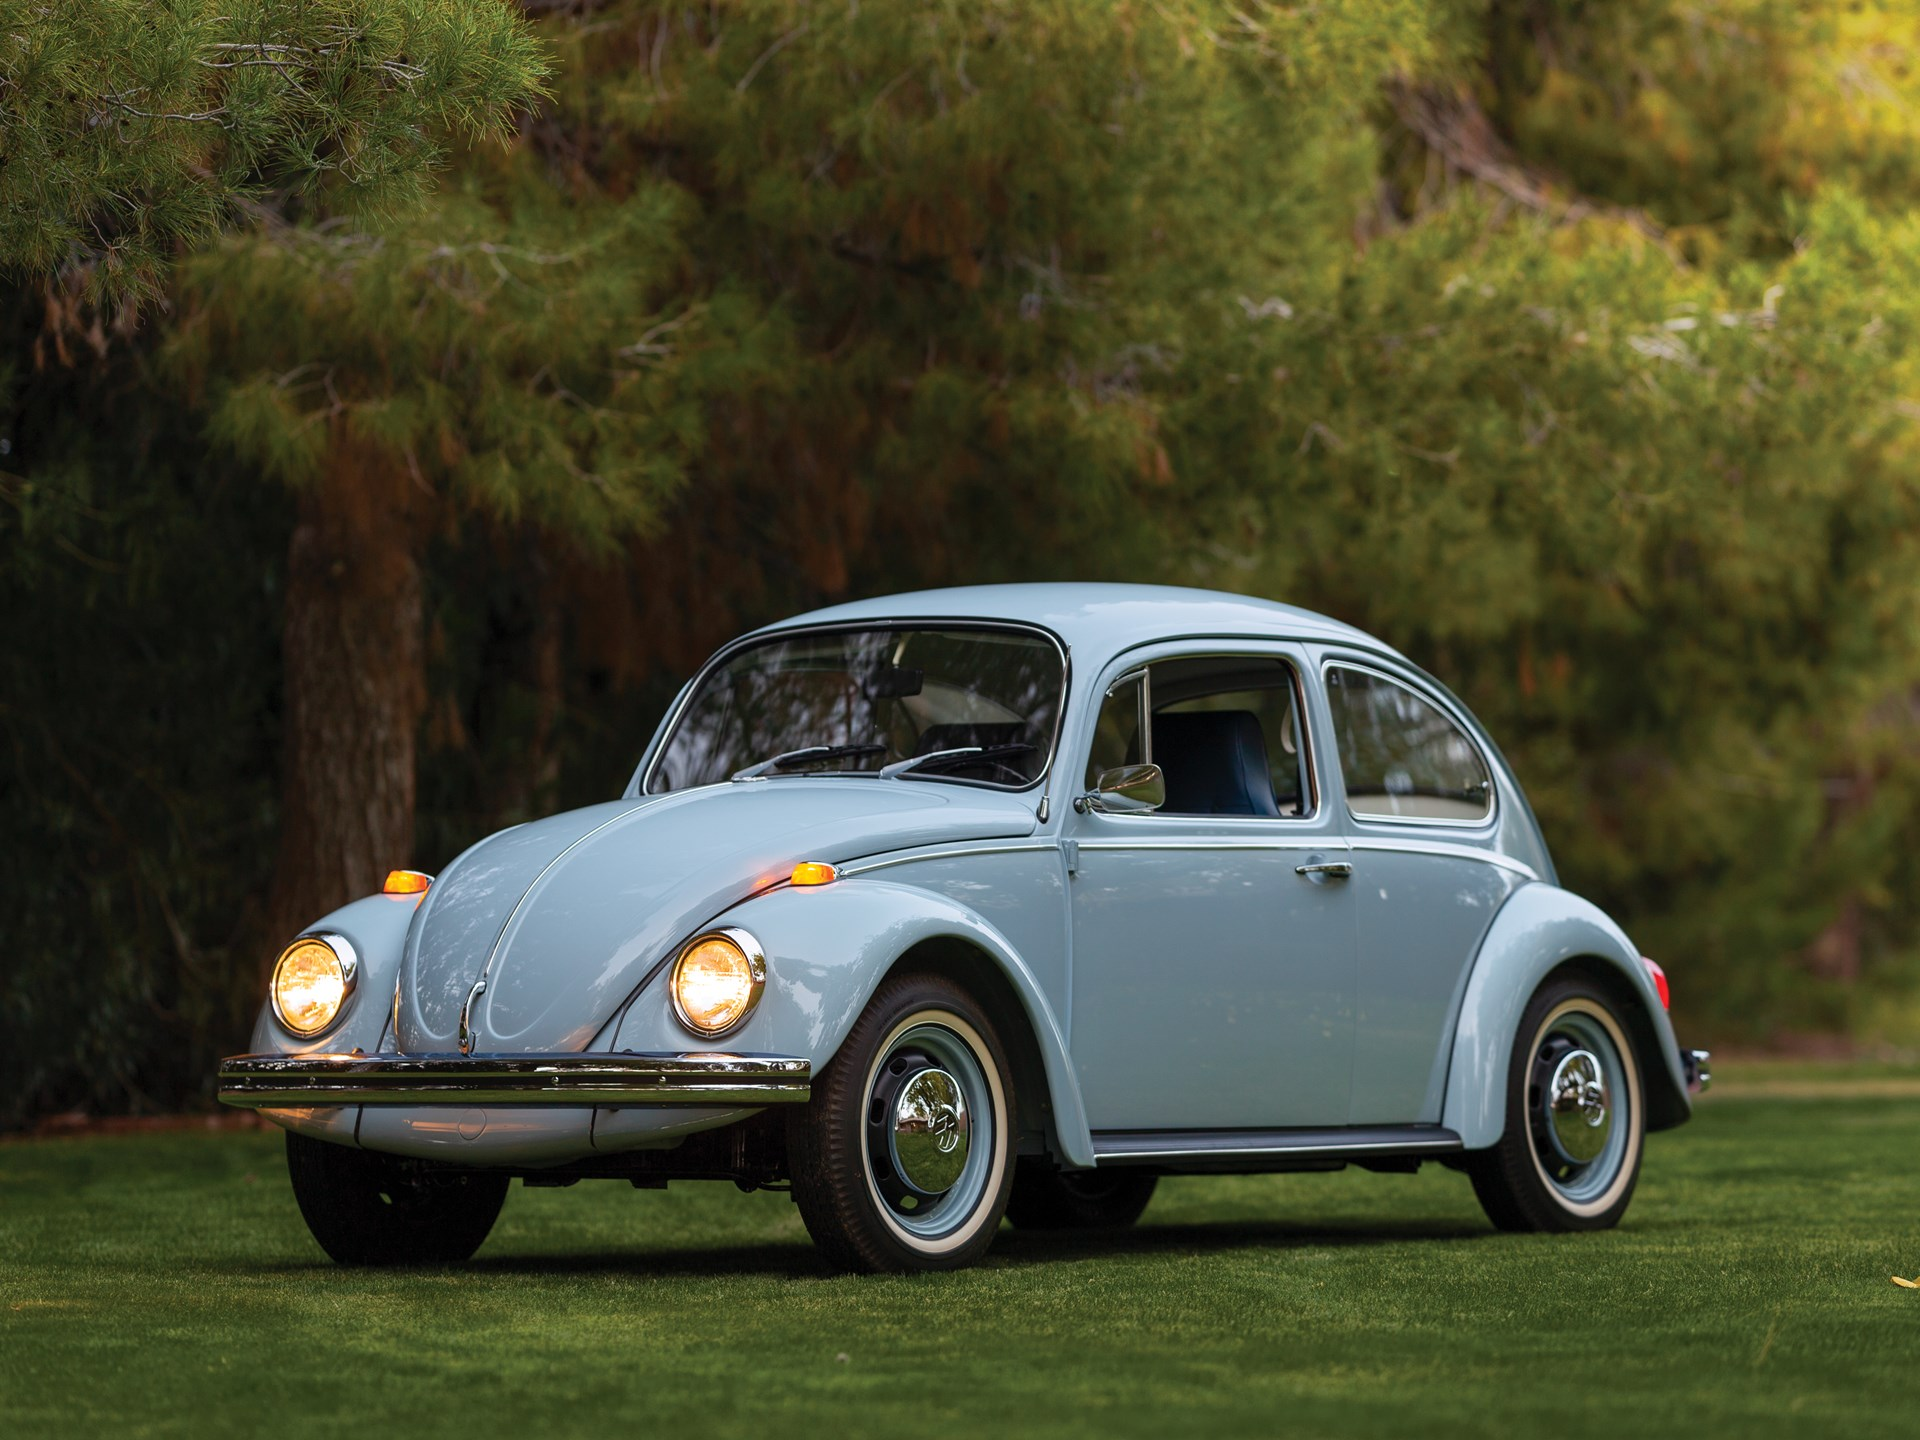 1968 Volkswagen Beetle Sedan